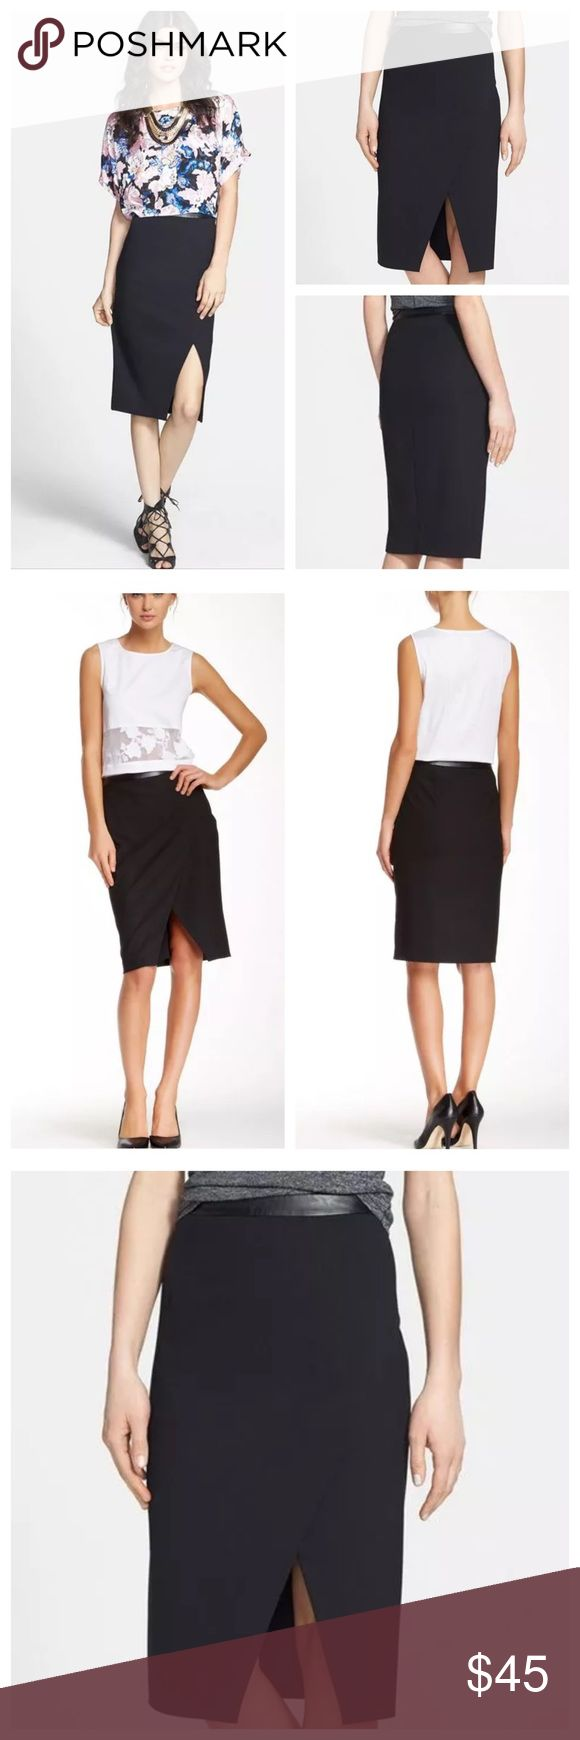 """1.State Faux Leather Wrap Black Knee Pencil Skirt Slick faux leather contours the waistline of this slim woven pencil skirt composed in an asymmetrical wrap-style silhouette. Super versatile piece work appropriate enough for  the board room and edgy enough to wear out for dinner and drinks.    •  24 1/2"""" length  •  Side zip closure.  •  Lined.  •  69% polyester, 29% viscose, 2% spandex.  •  Dry clean.  •  MSRP $90     By 1.STATE 1.State Skirts Pencil"""